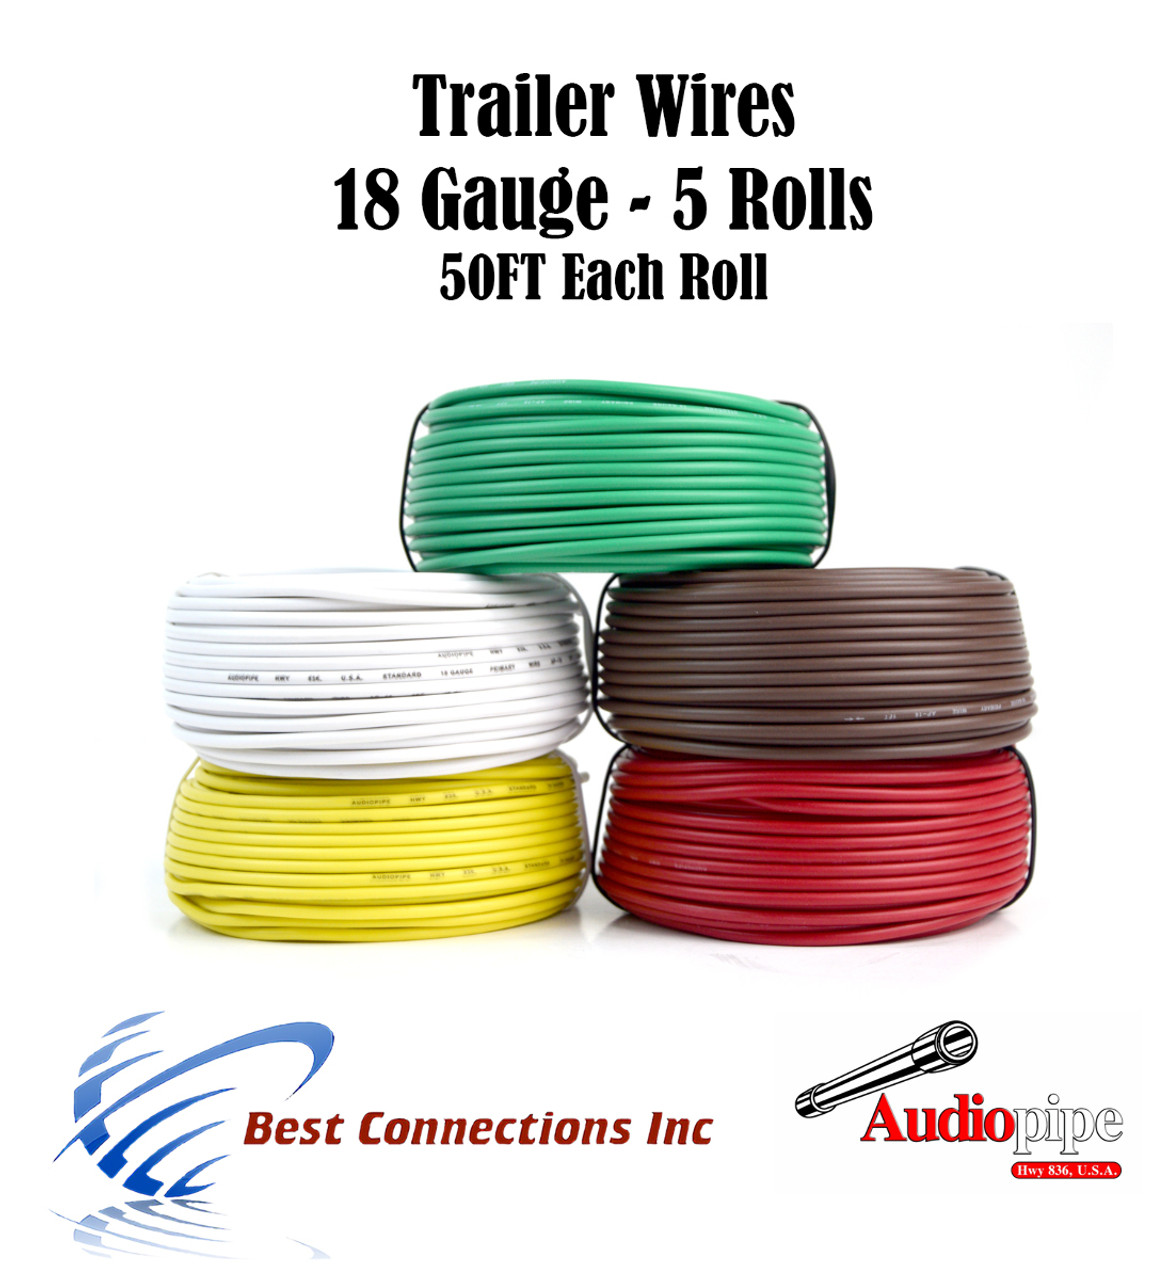 hight resolution of 5 way trailer wire light cable for harness led 50ft each roll 18 gauge 5 colors